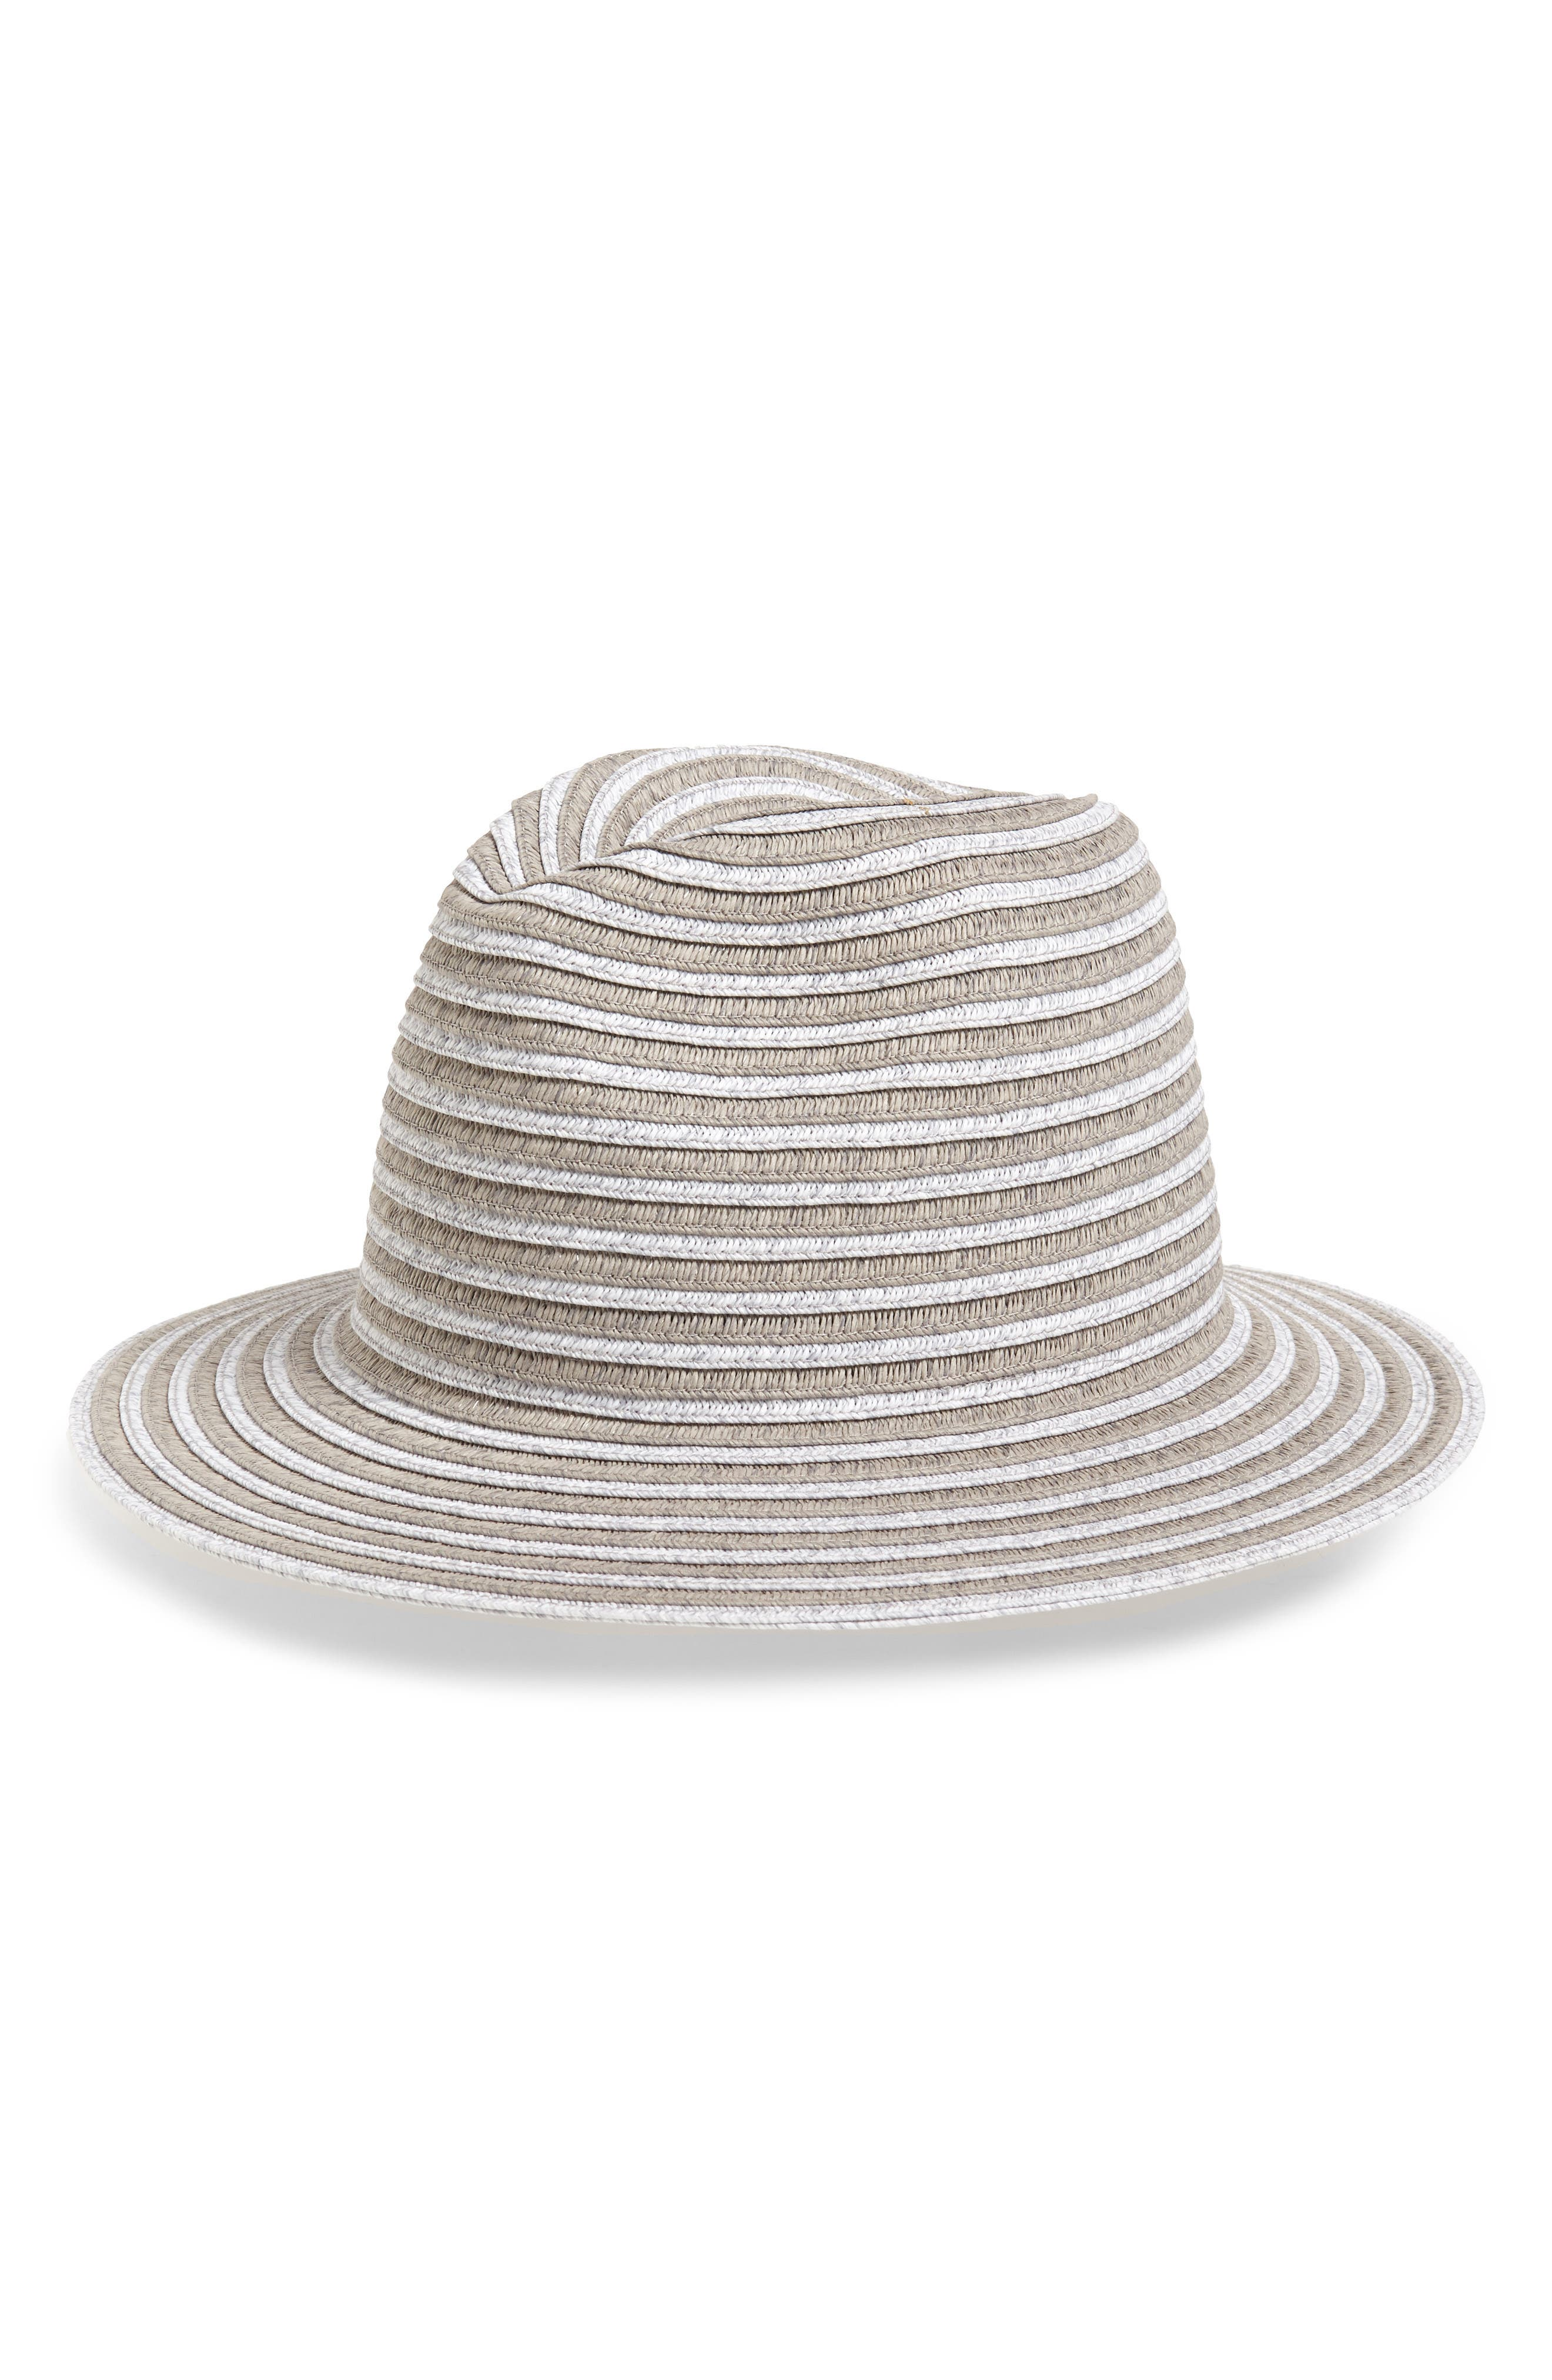 Textured stripes amplify the classic style of this outfit-making woven straw Panama hat. When you buy Treasure & Bond, Nordstrom will donate 2.5% of net sales to organizations that work to empower youth. Style Name: Treasure & Bond Stripe Panama Hat. Style Number: 5987734. Available in stores.